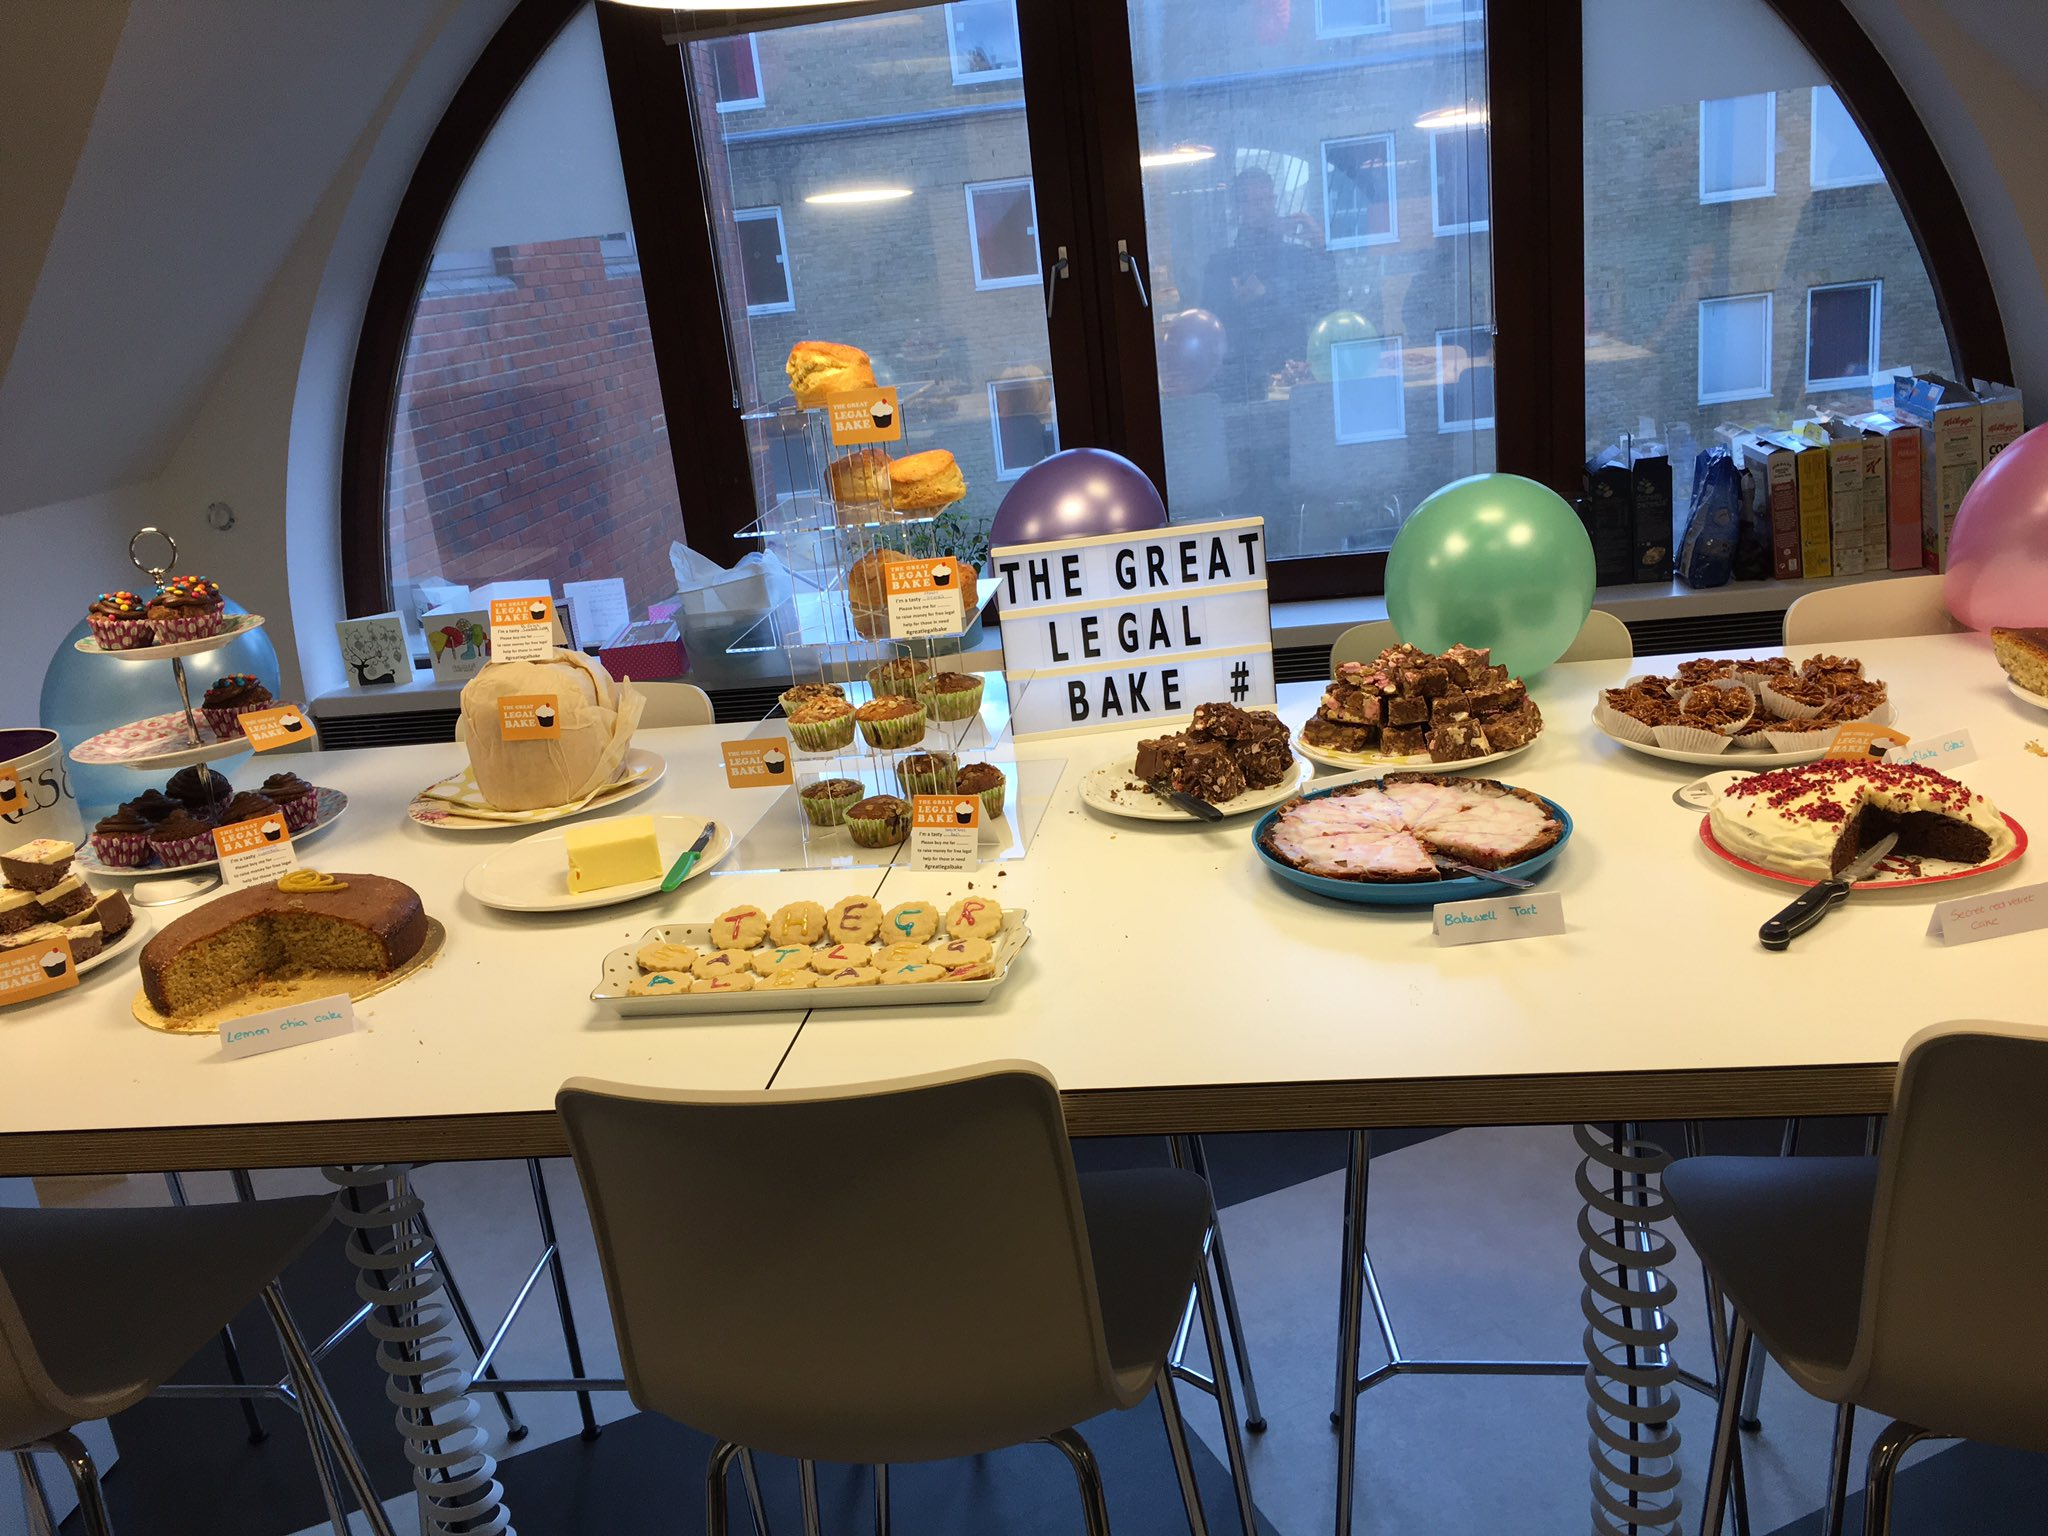 Incredible effort by our brilliant regulatory team @kingsleynapley in aid of #GreatLegalBake what a spread! https://t.co/DgsSzjkdmc